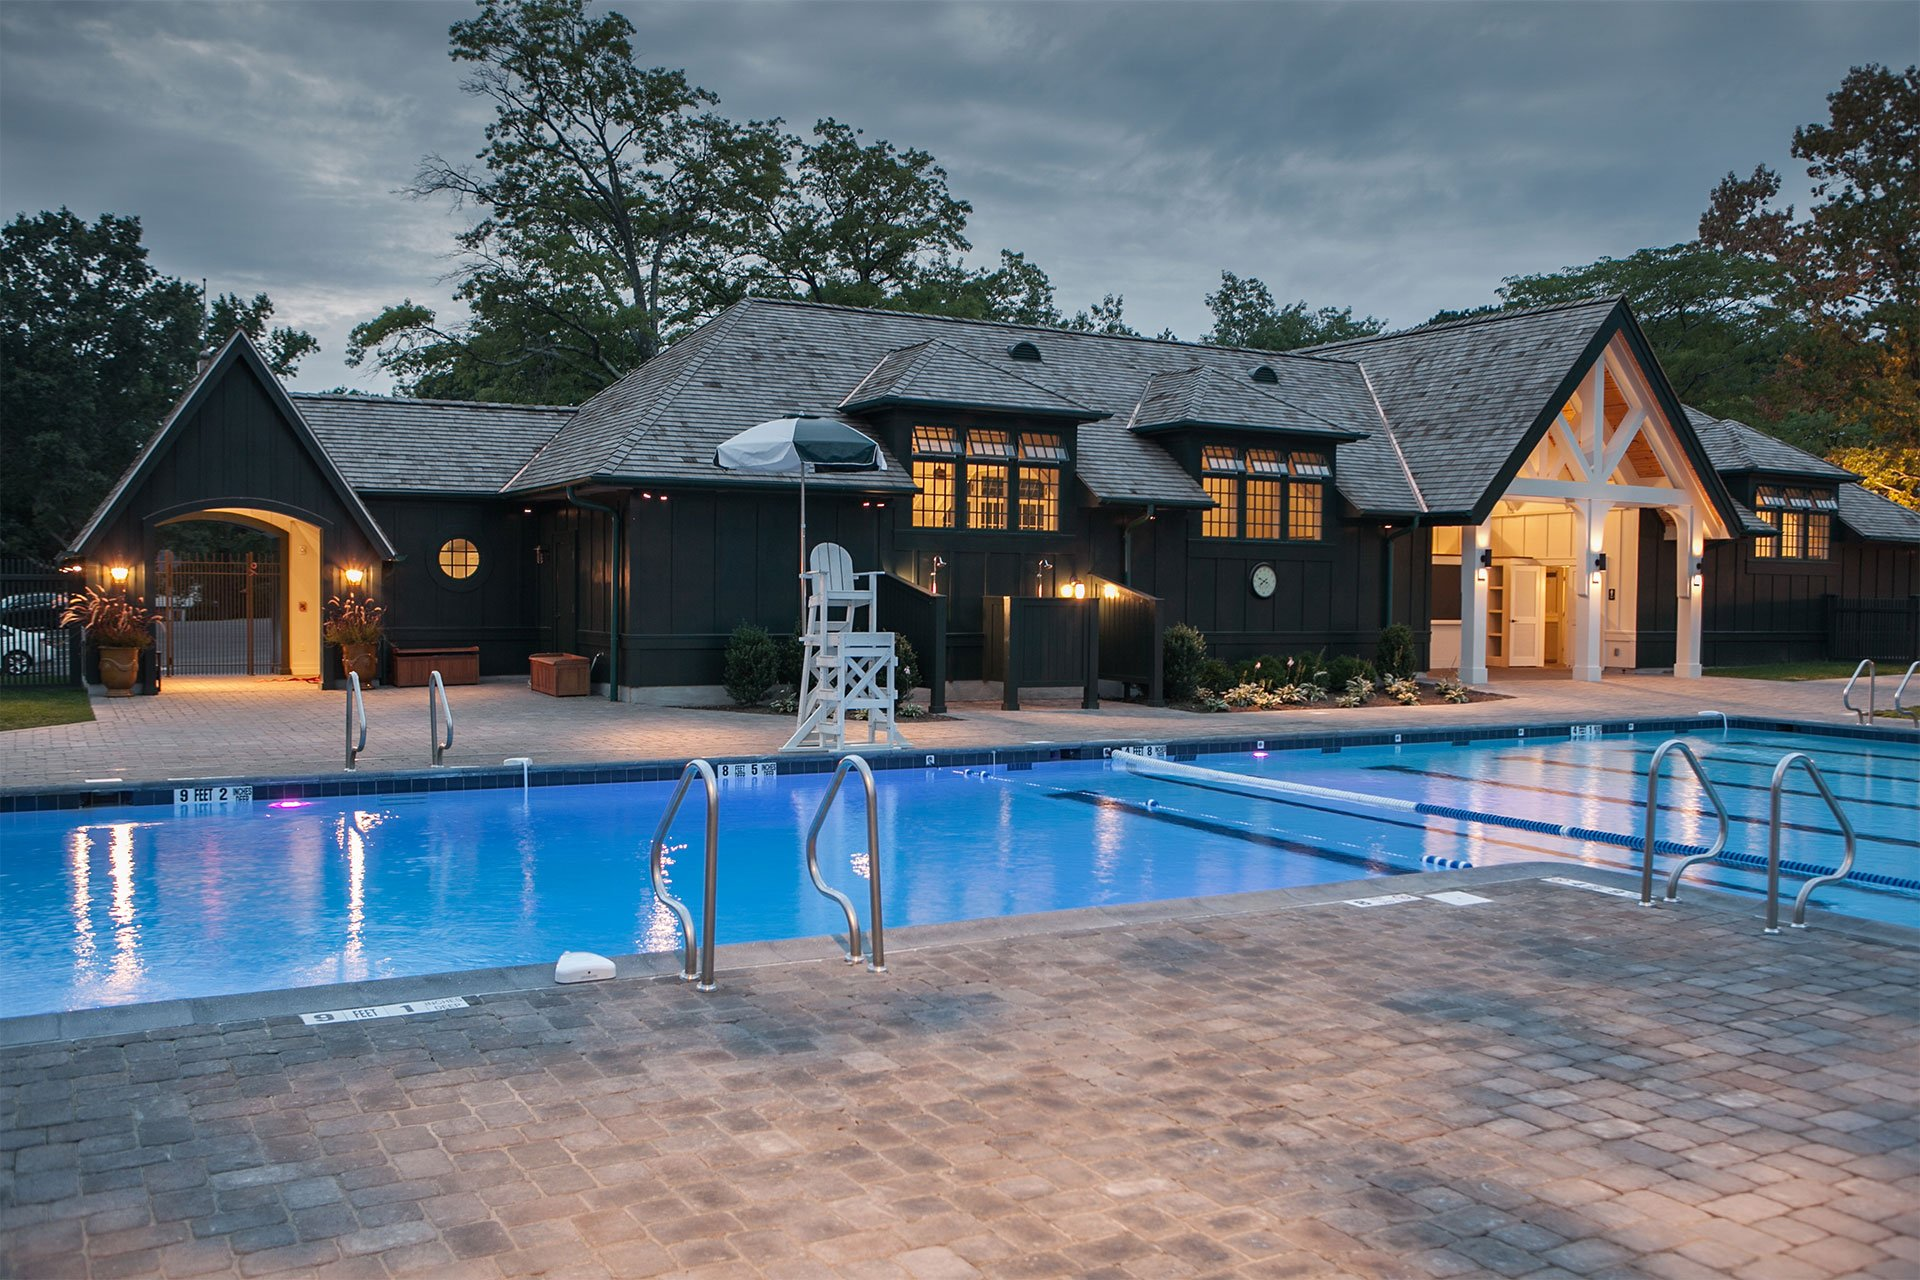 murphy-brothers-contracting-commercial-mamk-winged-foot_exterior-pool-complex-building-pool-14